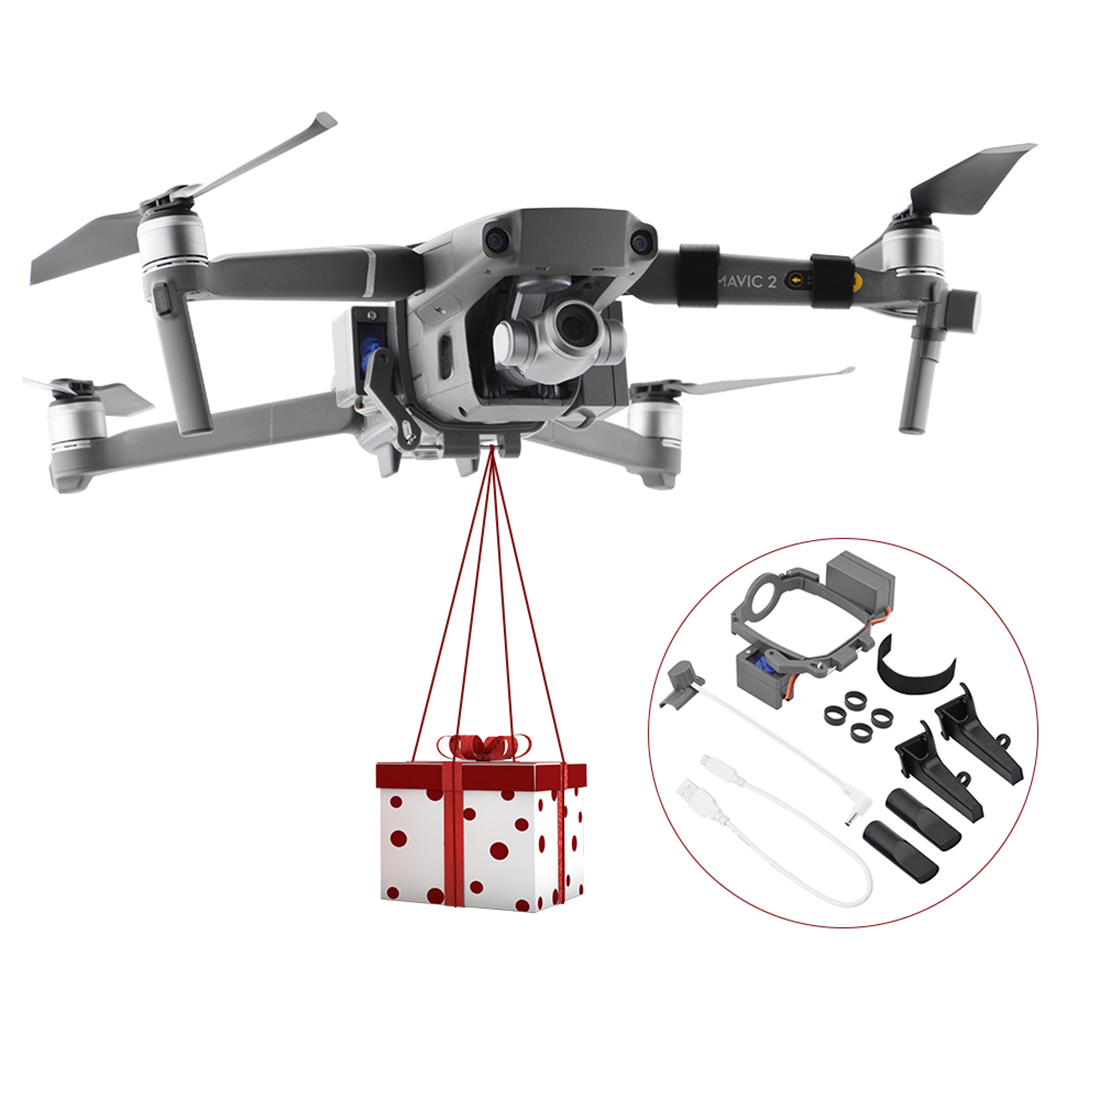 Best Chance for  HOBBYINRC FOR MAAVIC 2 Air Thrower Delivery Drop for DJI Mavic 2 Pro / Mavic 2 ZOOM Gift Wedding Ri